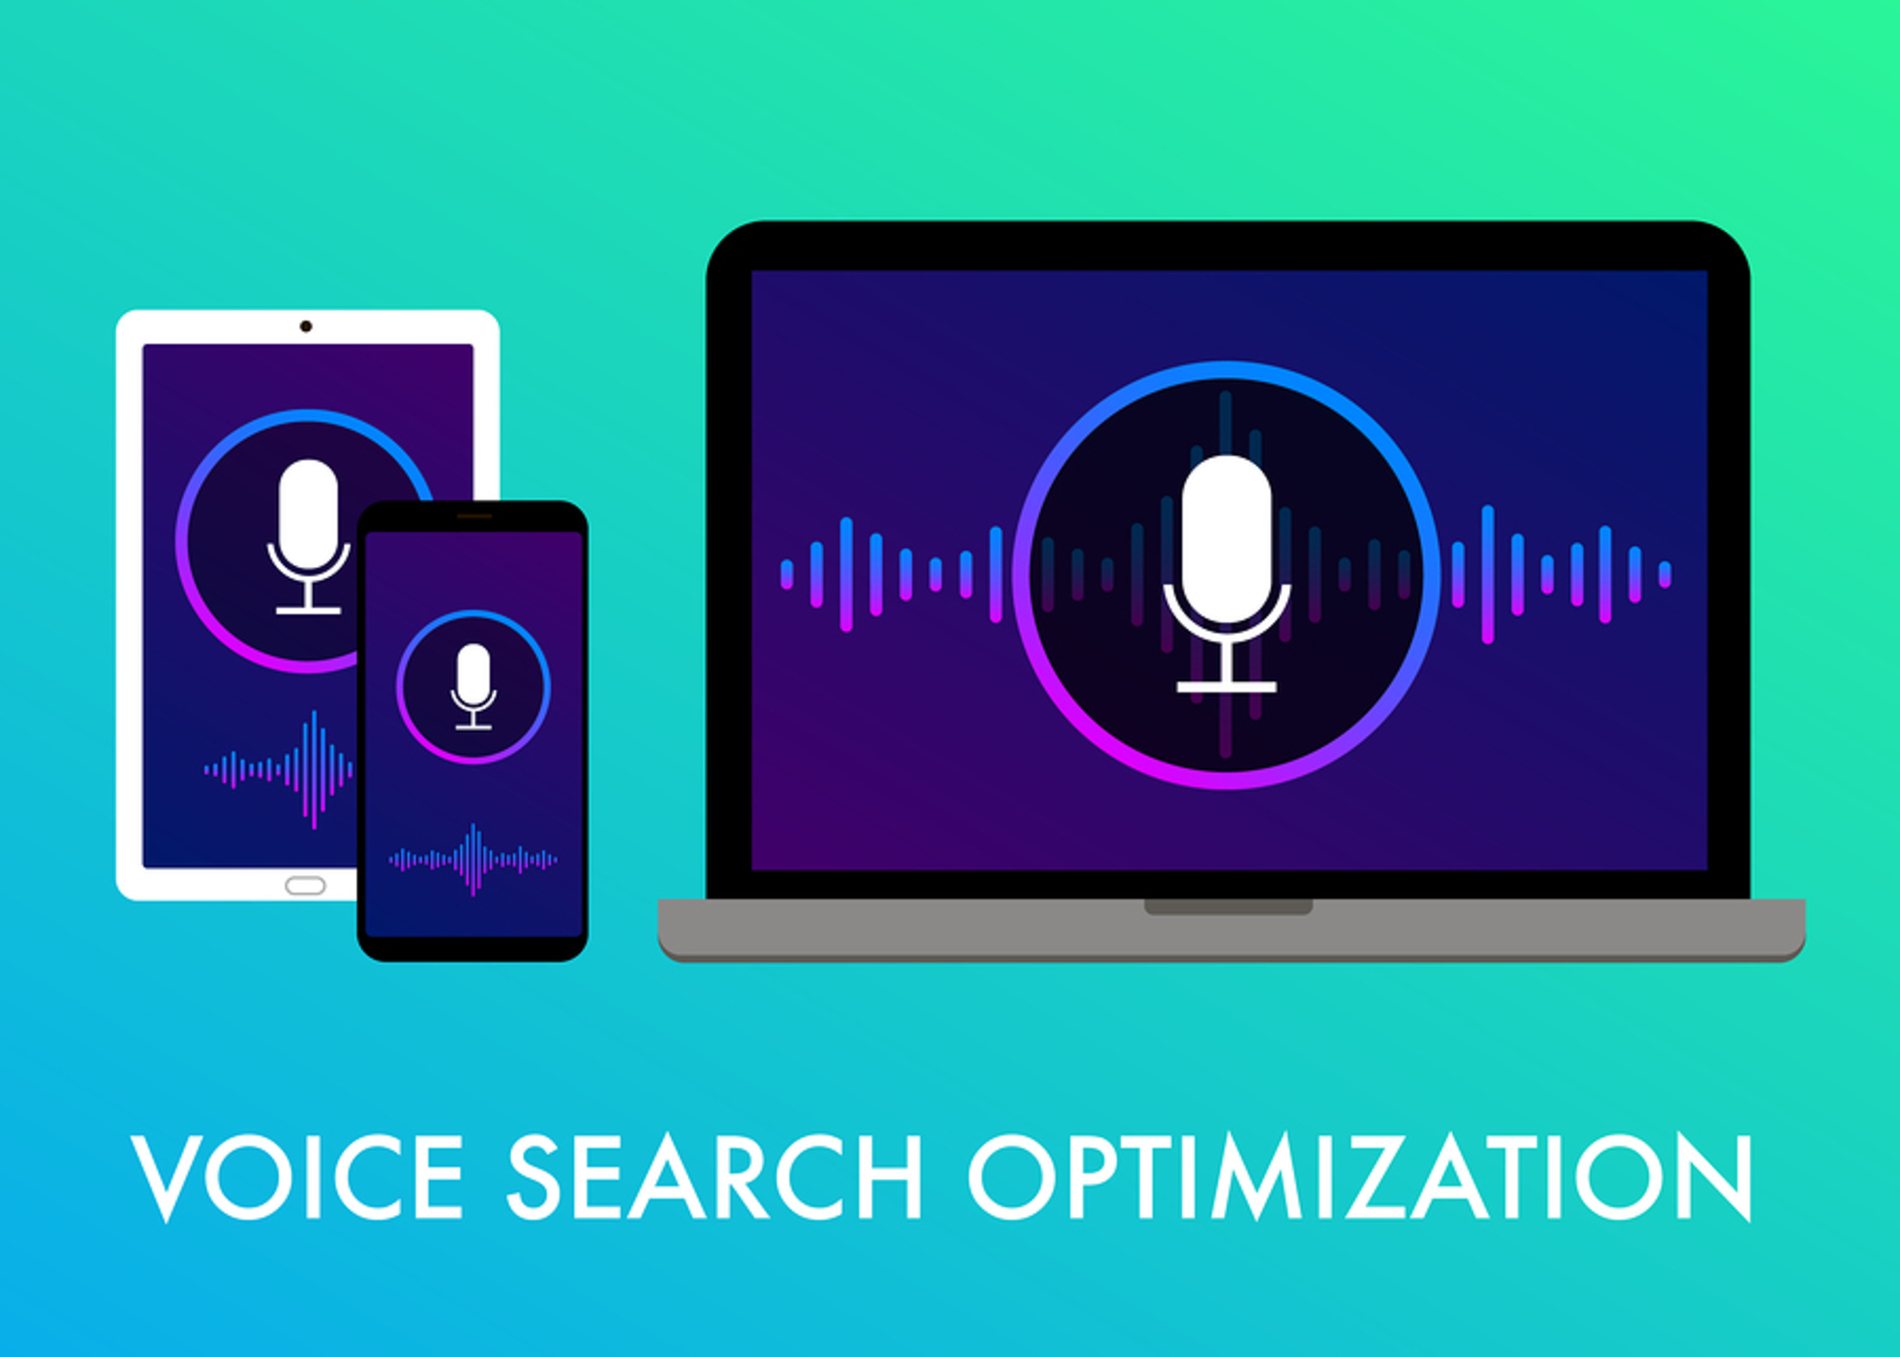 Voice search optimization.